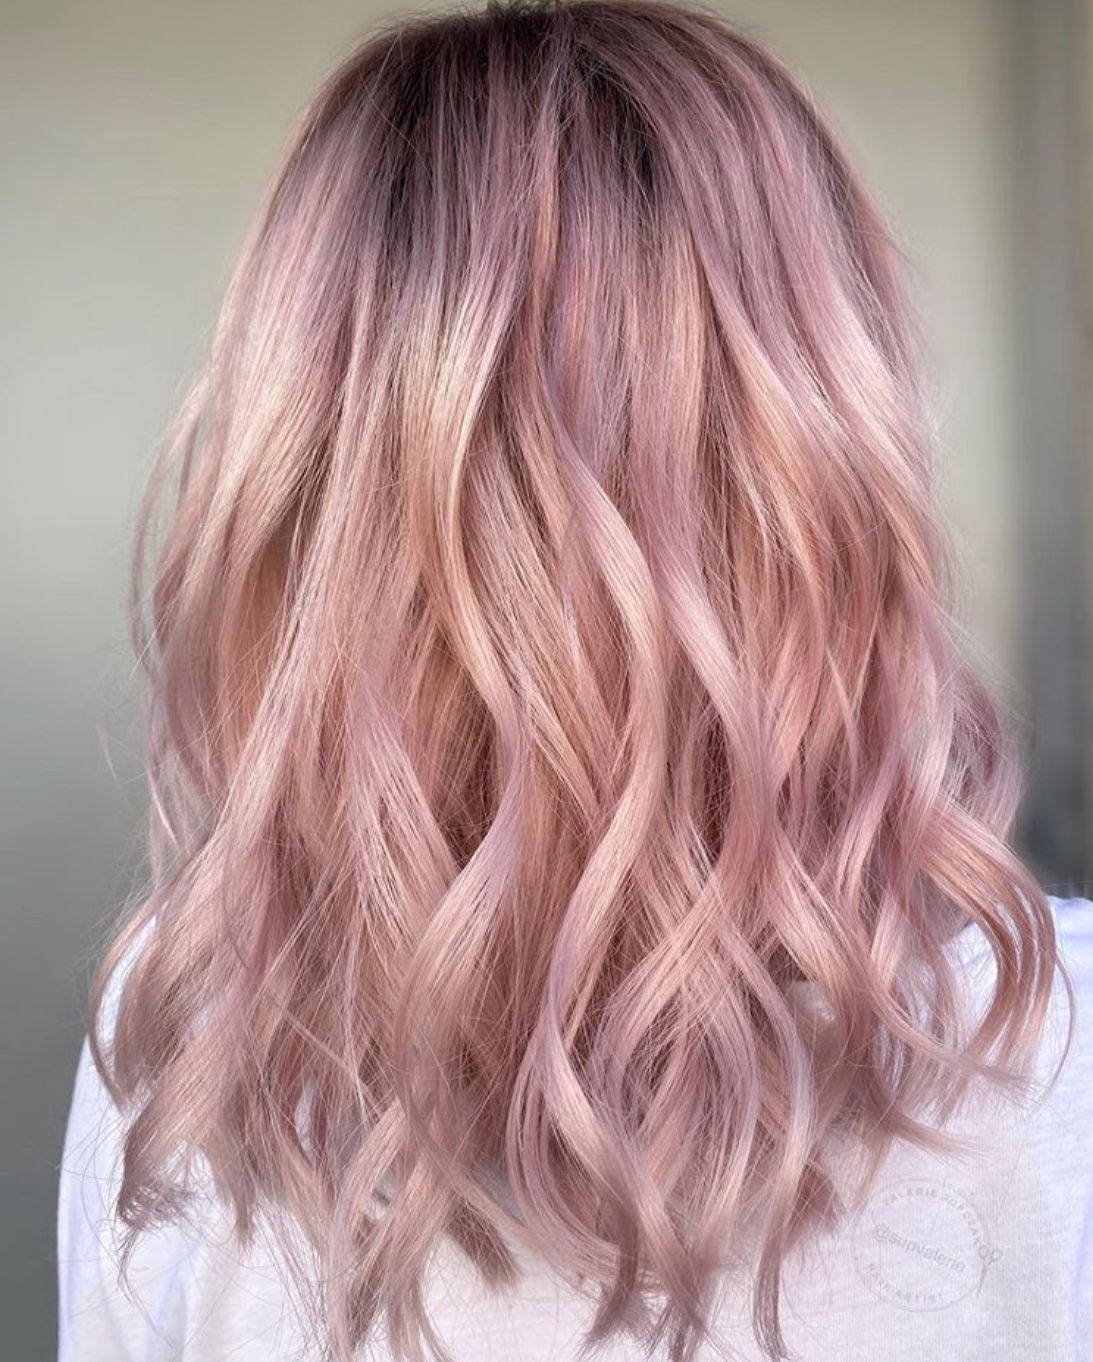 These Rosegold Hair Ideas Will Make You Want To Dye Your Hair ...